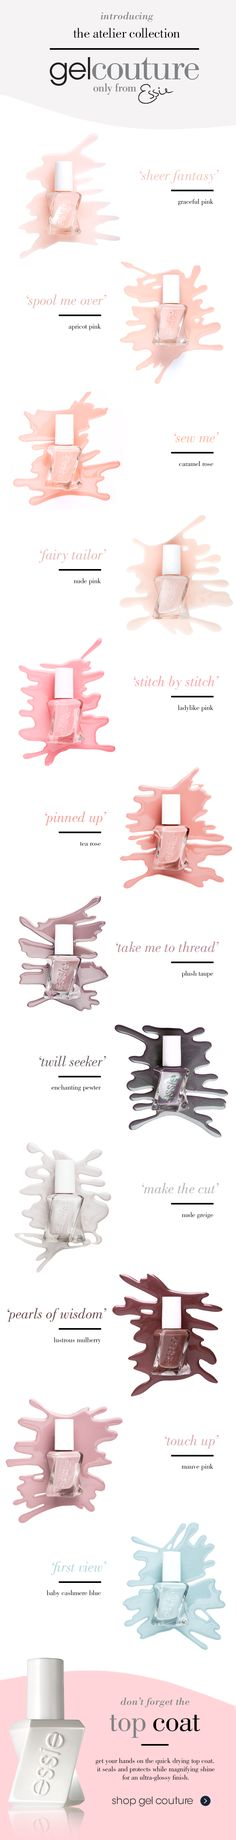 Make a powerful statement in whisper soft essie neutrals. Inspired by the atelier's go-to palette of tulle, fishnet and lace. These long-wear nail polish shades seamlessly fuse delicacy with quiet strength. From lustrous pearls and sheer veils to creamy silks, there's a shade of luxe for every heart's desire.